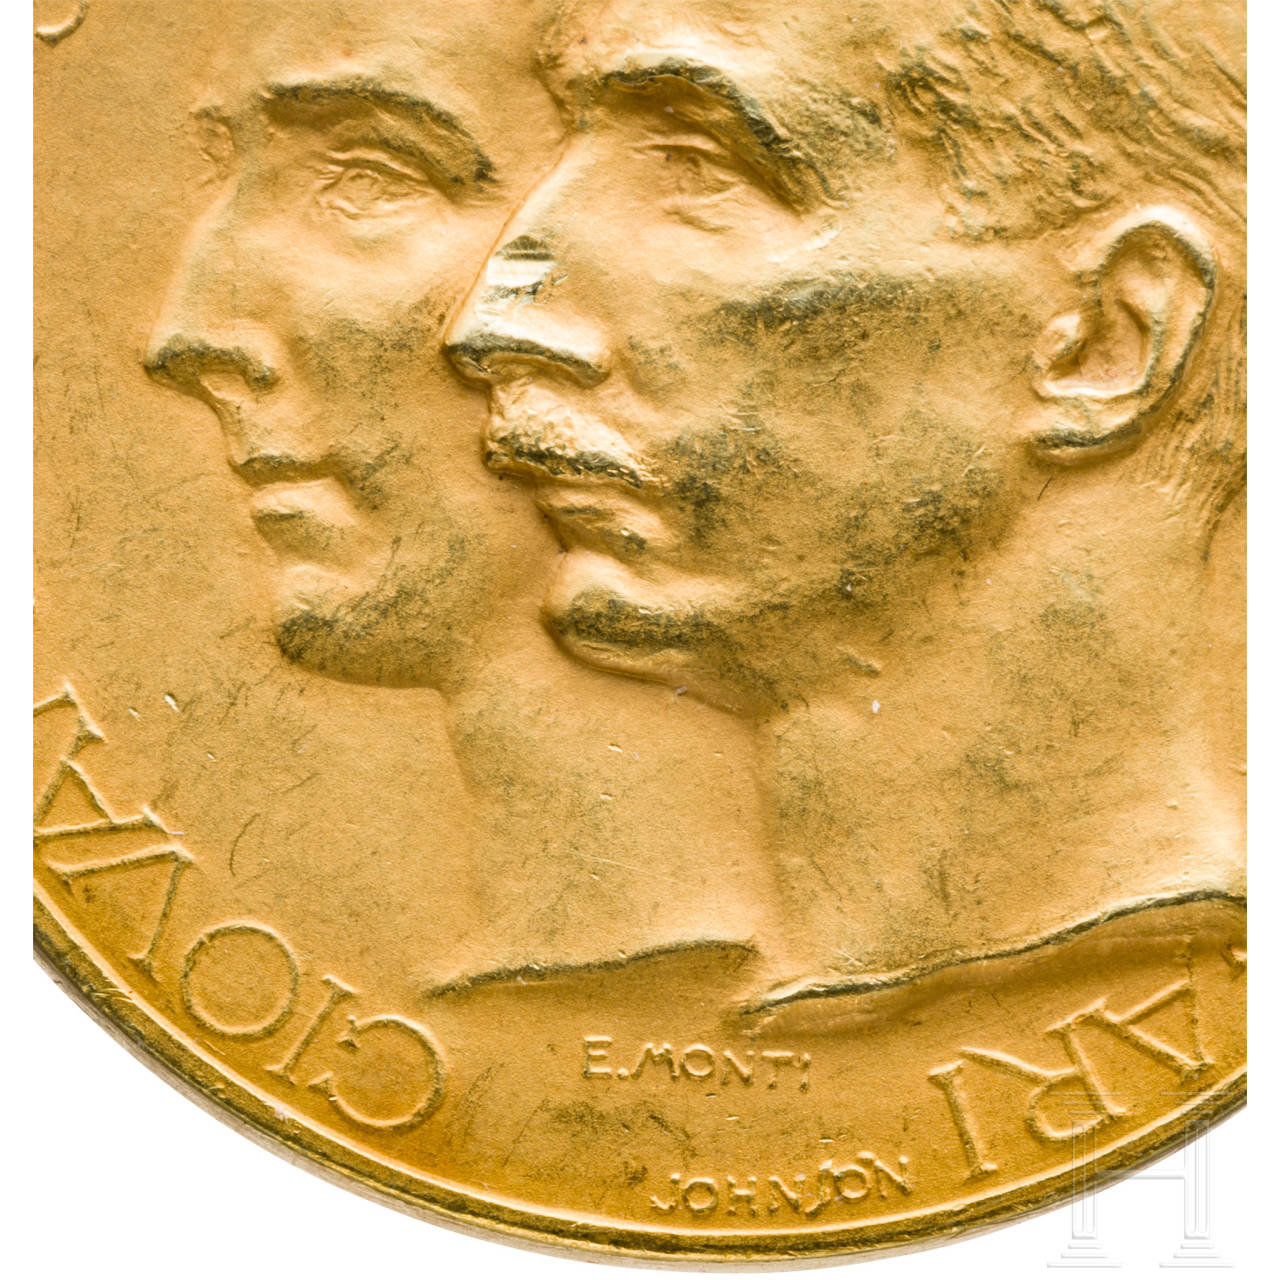 A gold medal to commemorate the wedding of Princess Giovanna to Tsar Boris III of Bulgaria in Assisi in 1930